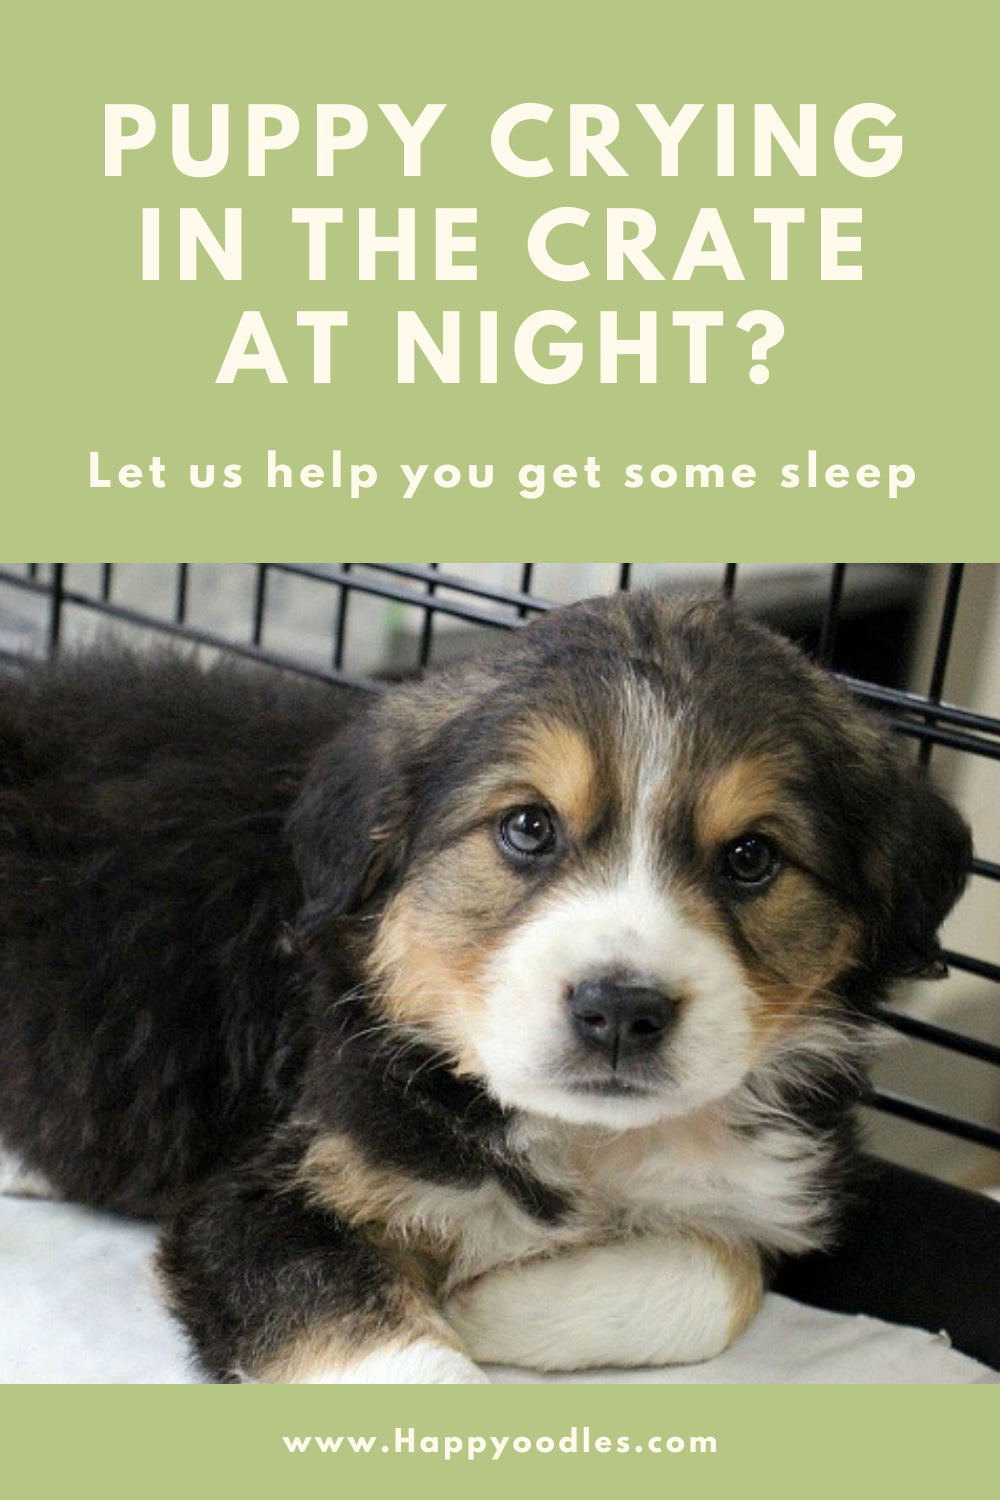 Puppy Crying in the Crate at Night? How to Make it Stop